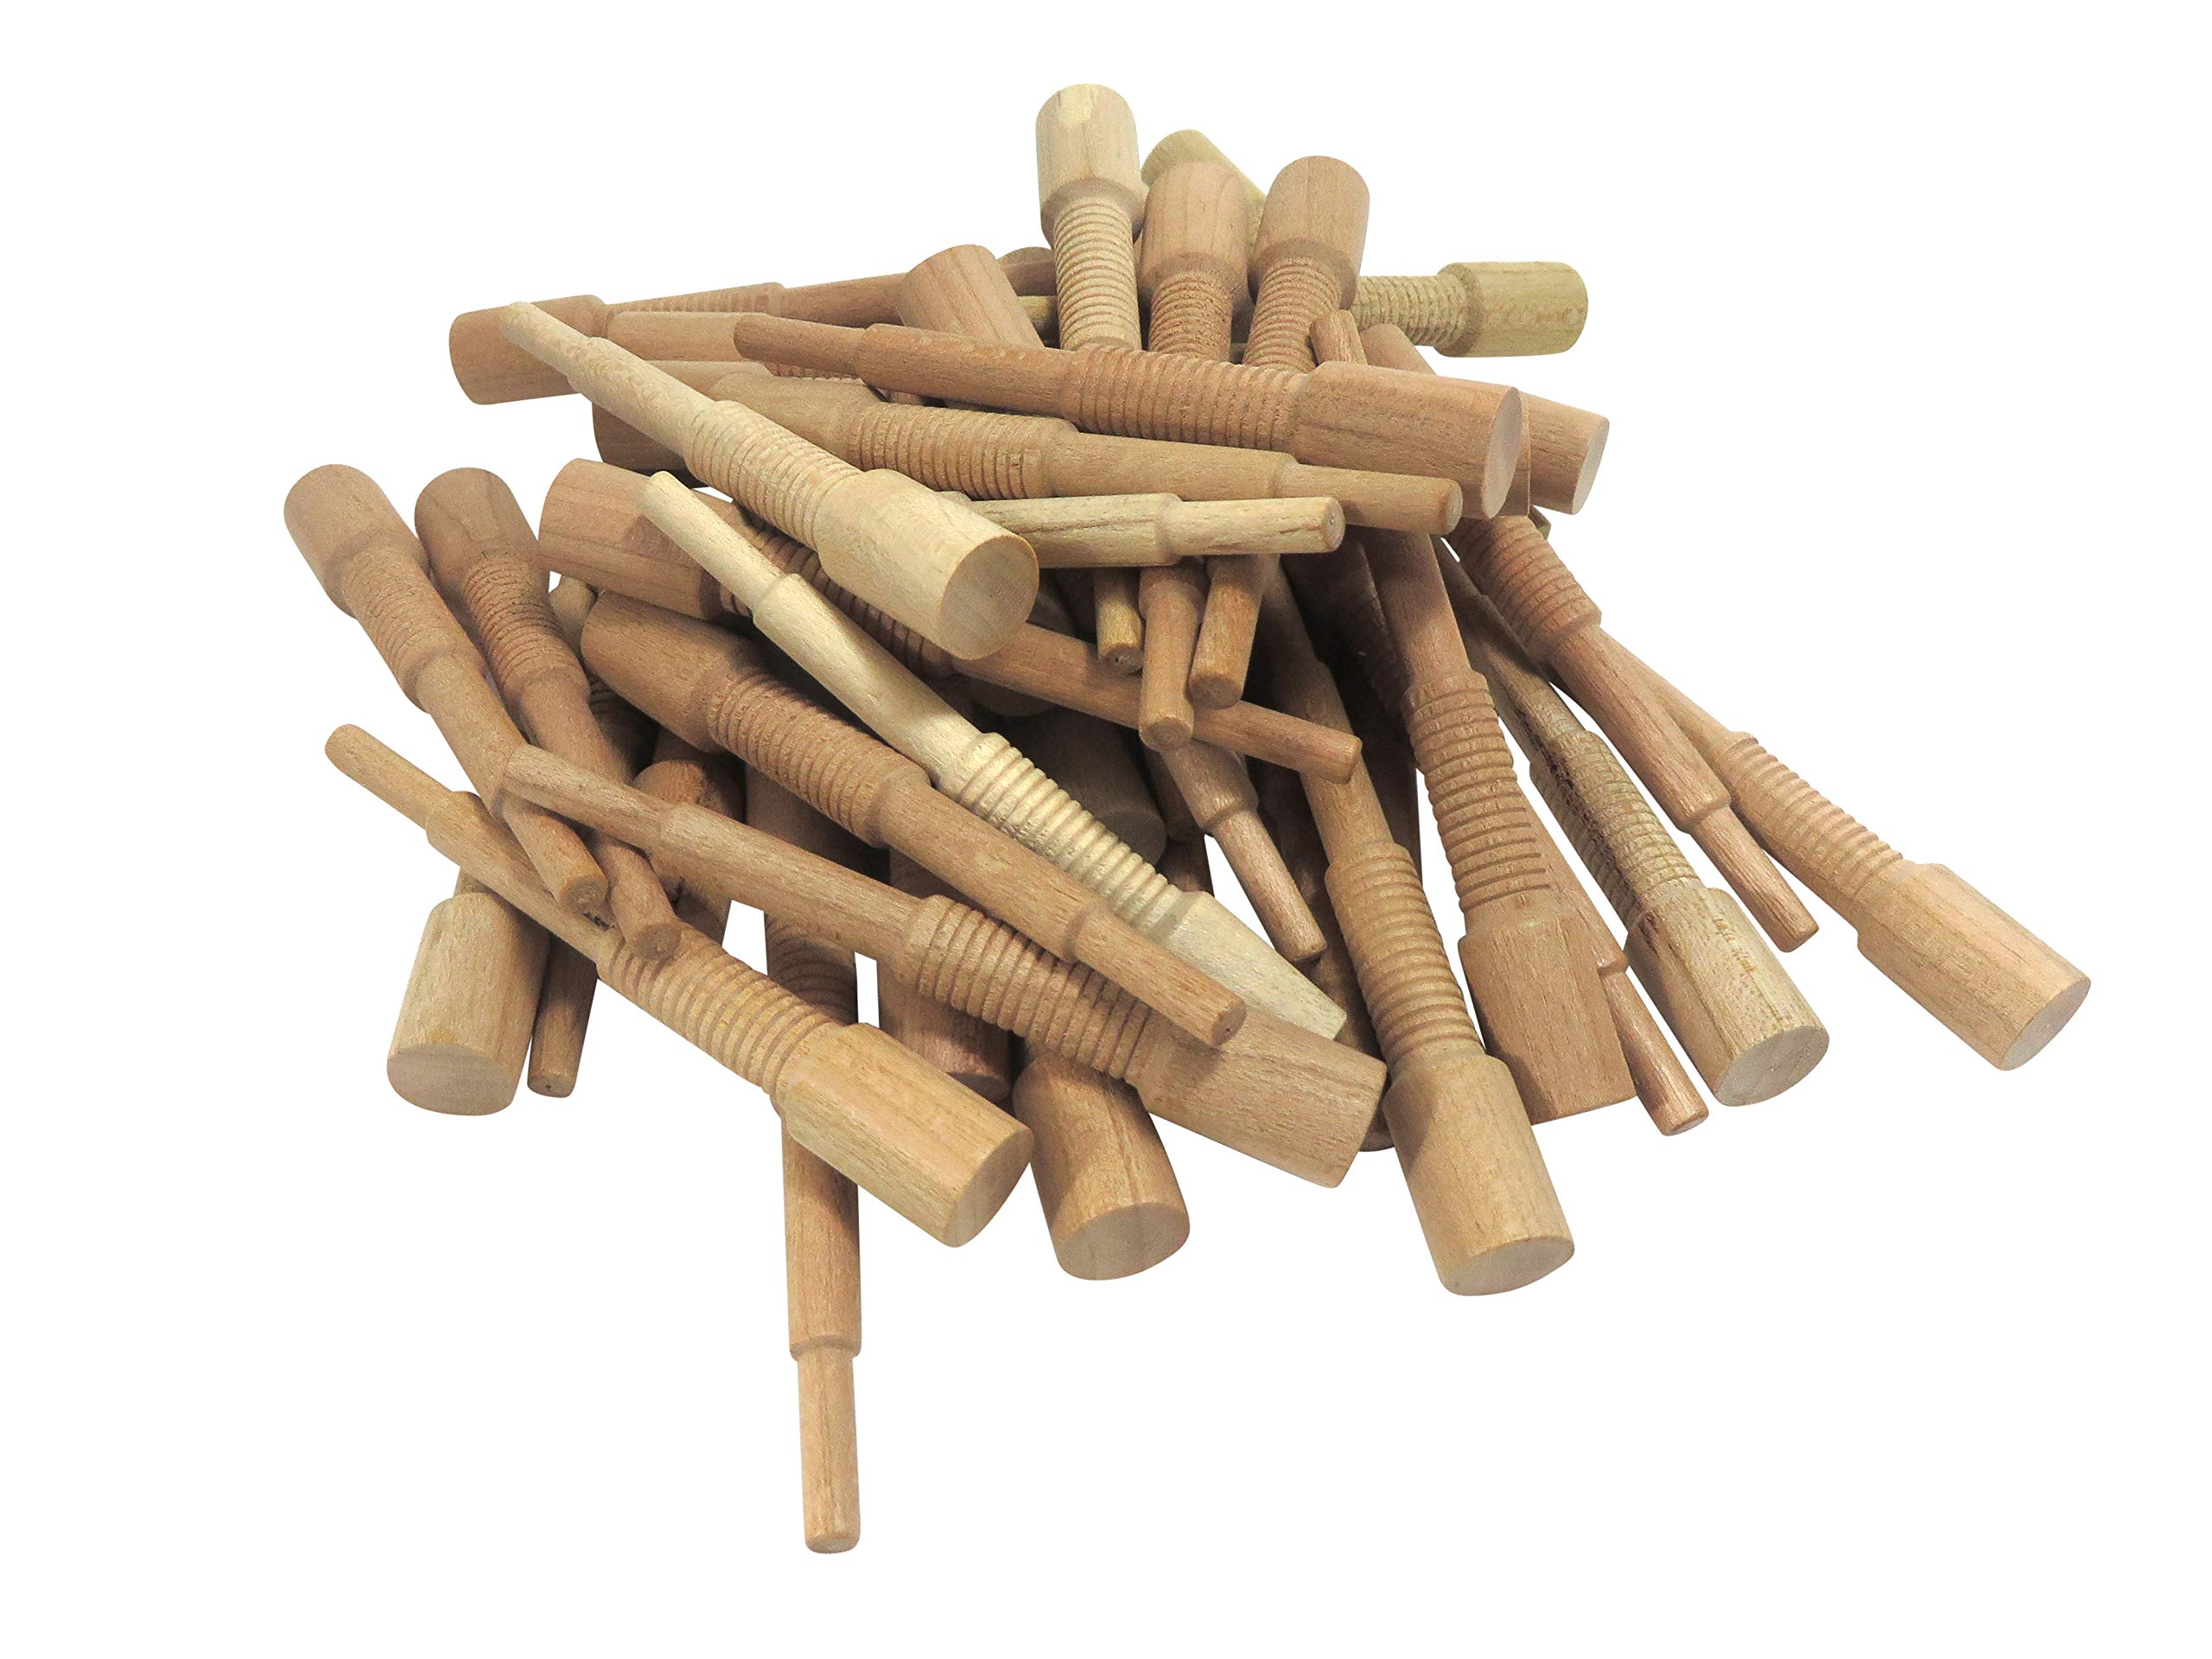 Miller Dowel C12D11-100 Set of 100 Each 1x Cherry Stepepd Dowels 3/8'' Diameter for Stock up to 1'' Thick by Miller